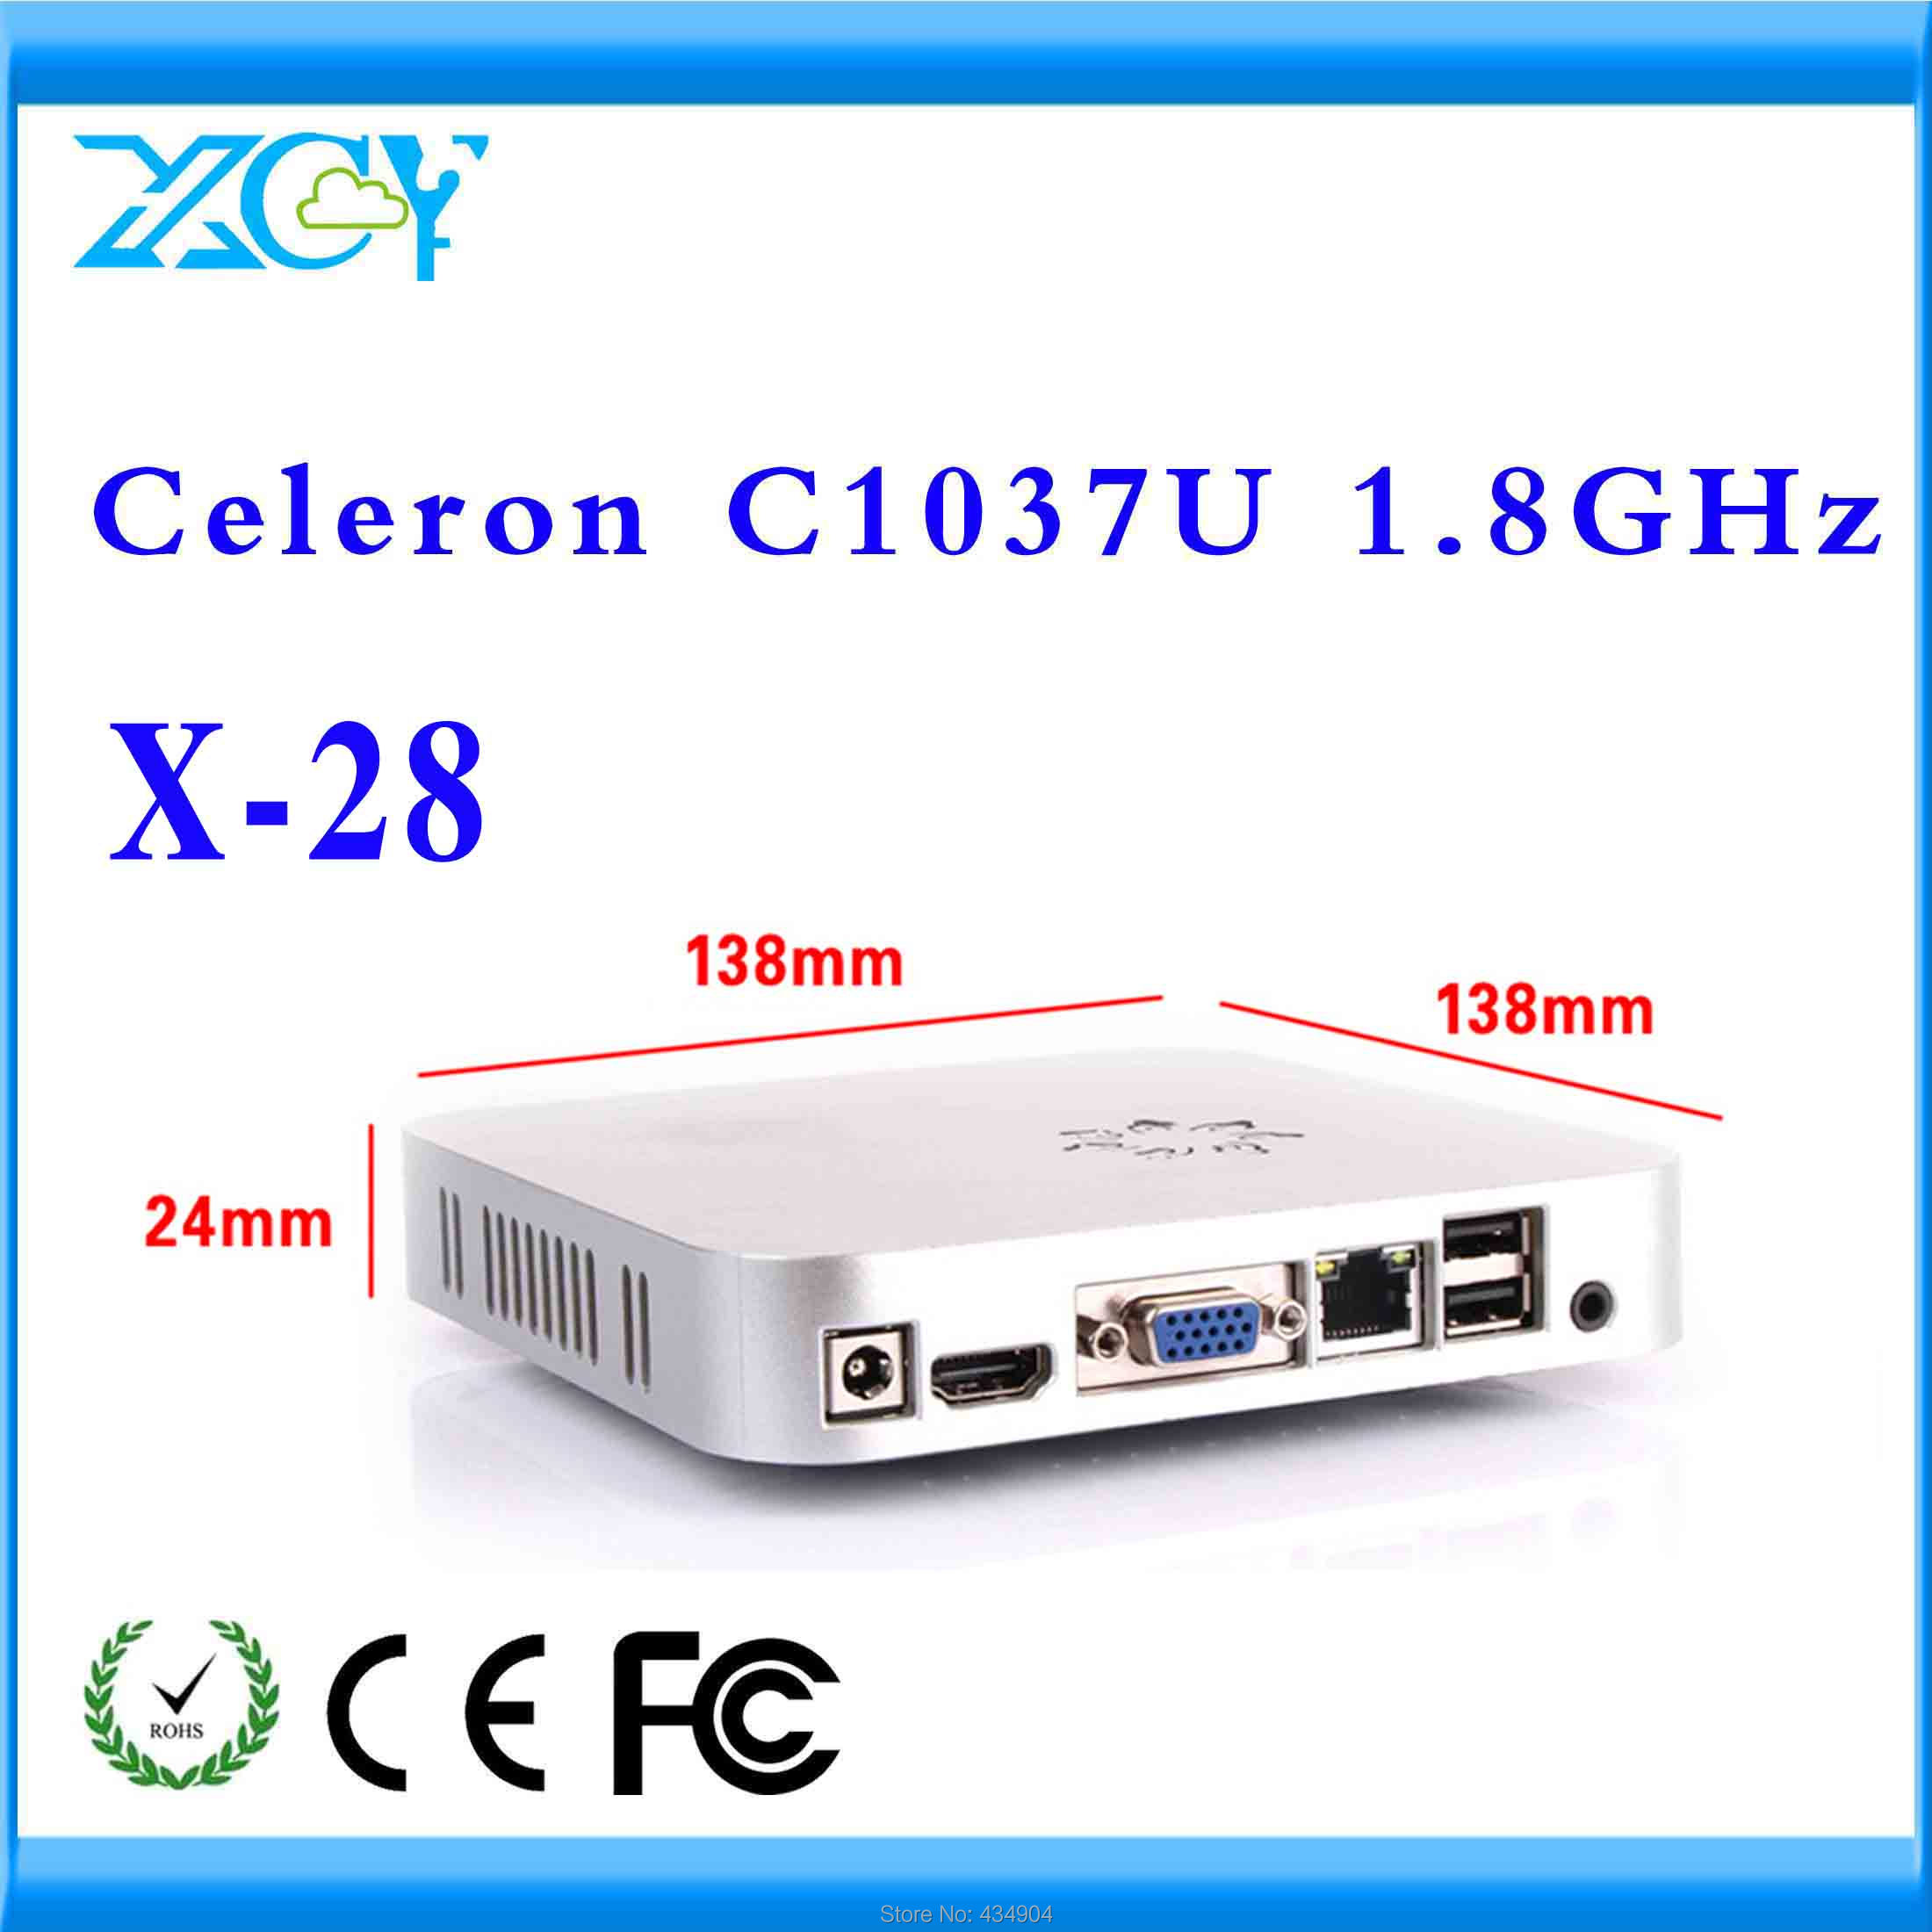 media server desktop mini pc mini intel pc X-28 c1037u 2g ram 128g ssd very small but powerfull PC support hd video(China (Mainland))